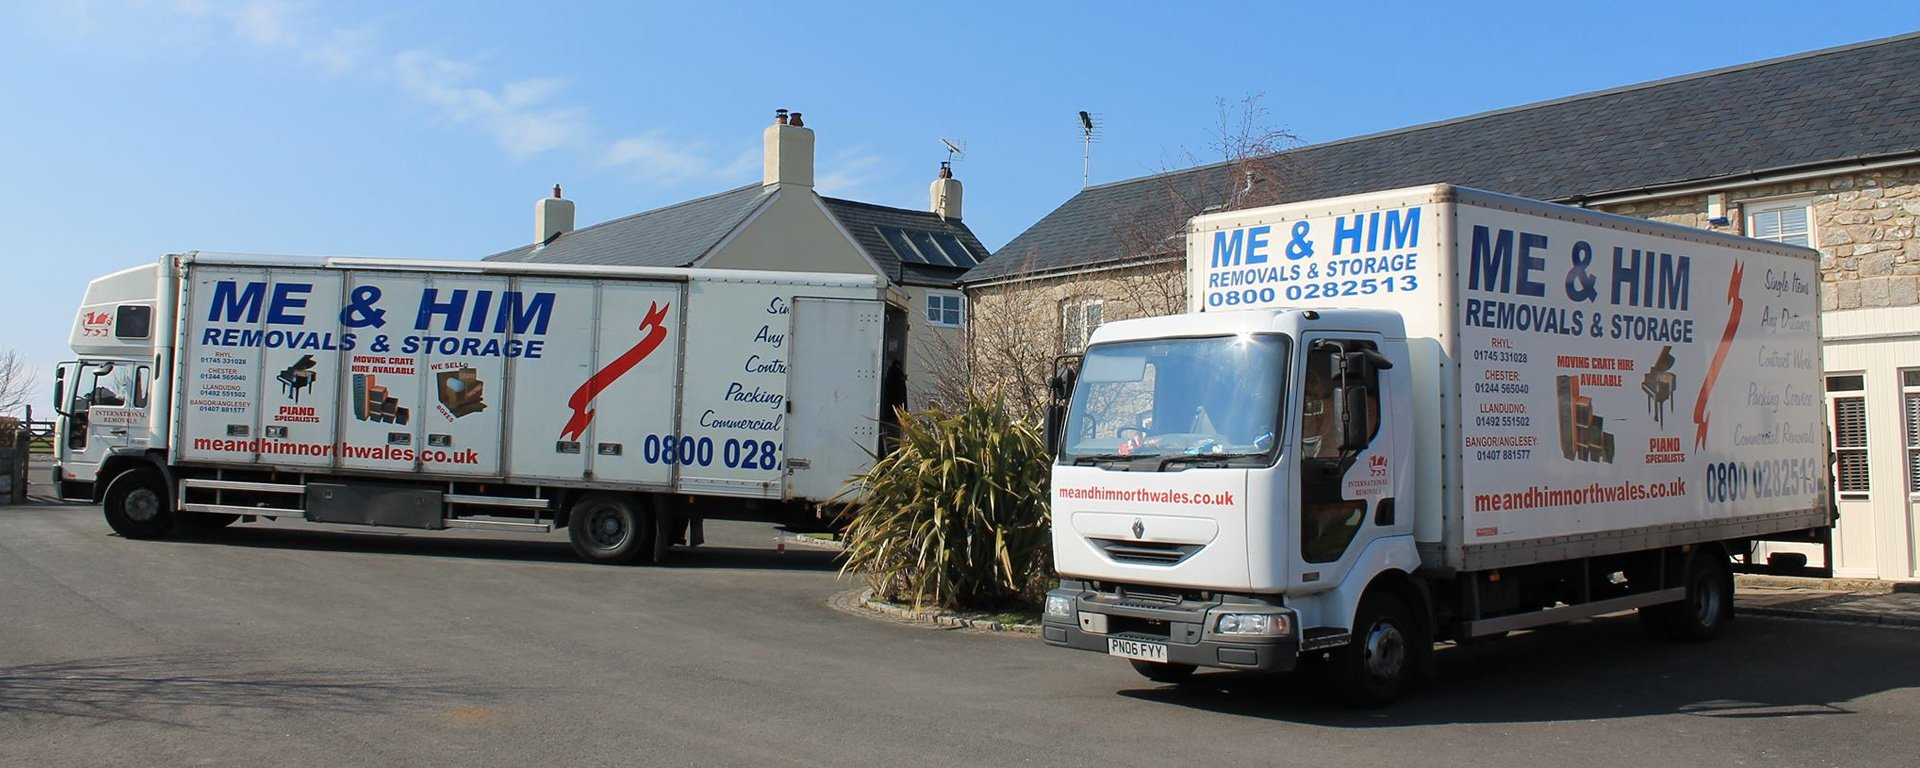 Me & Him Removals and Storage Vehicle